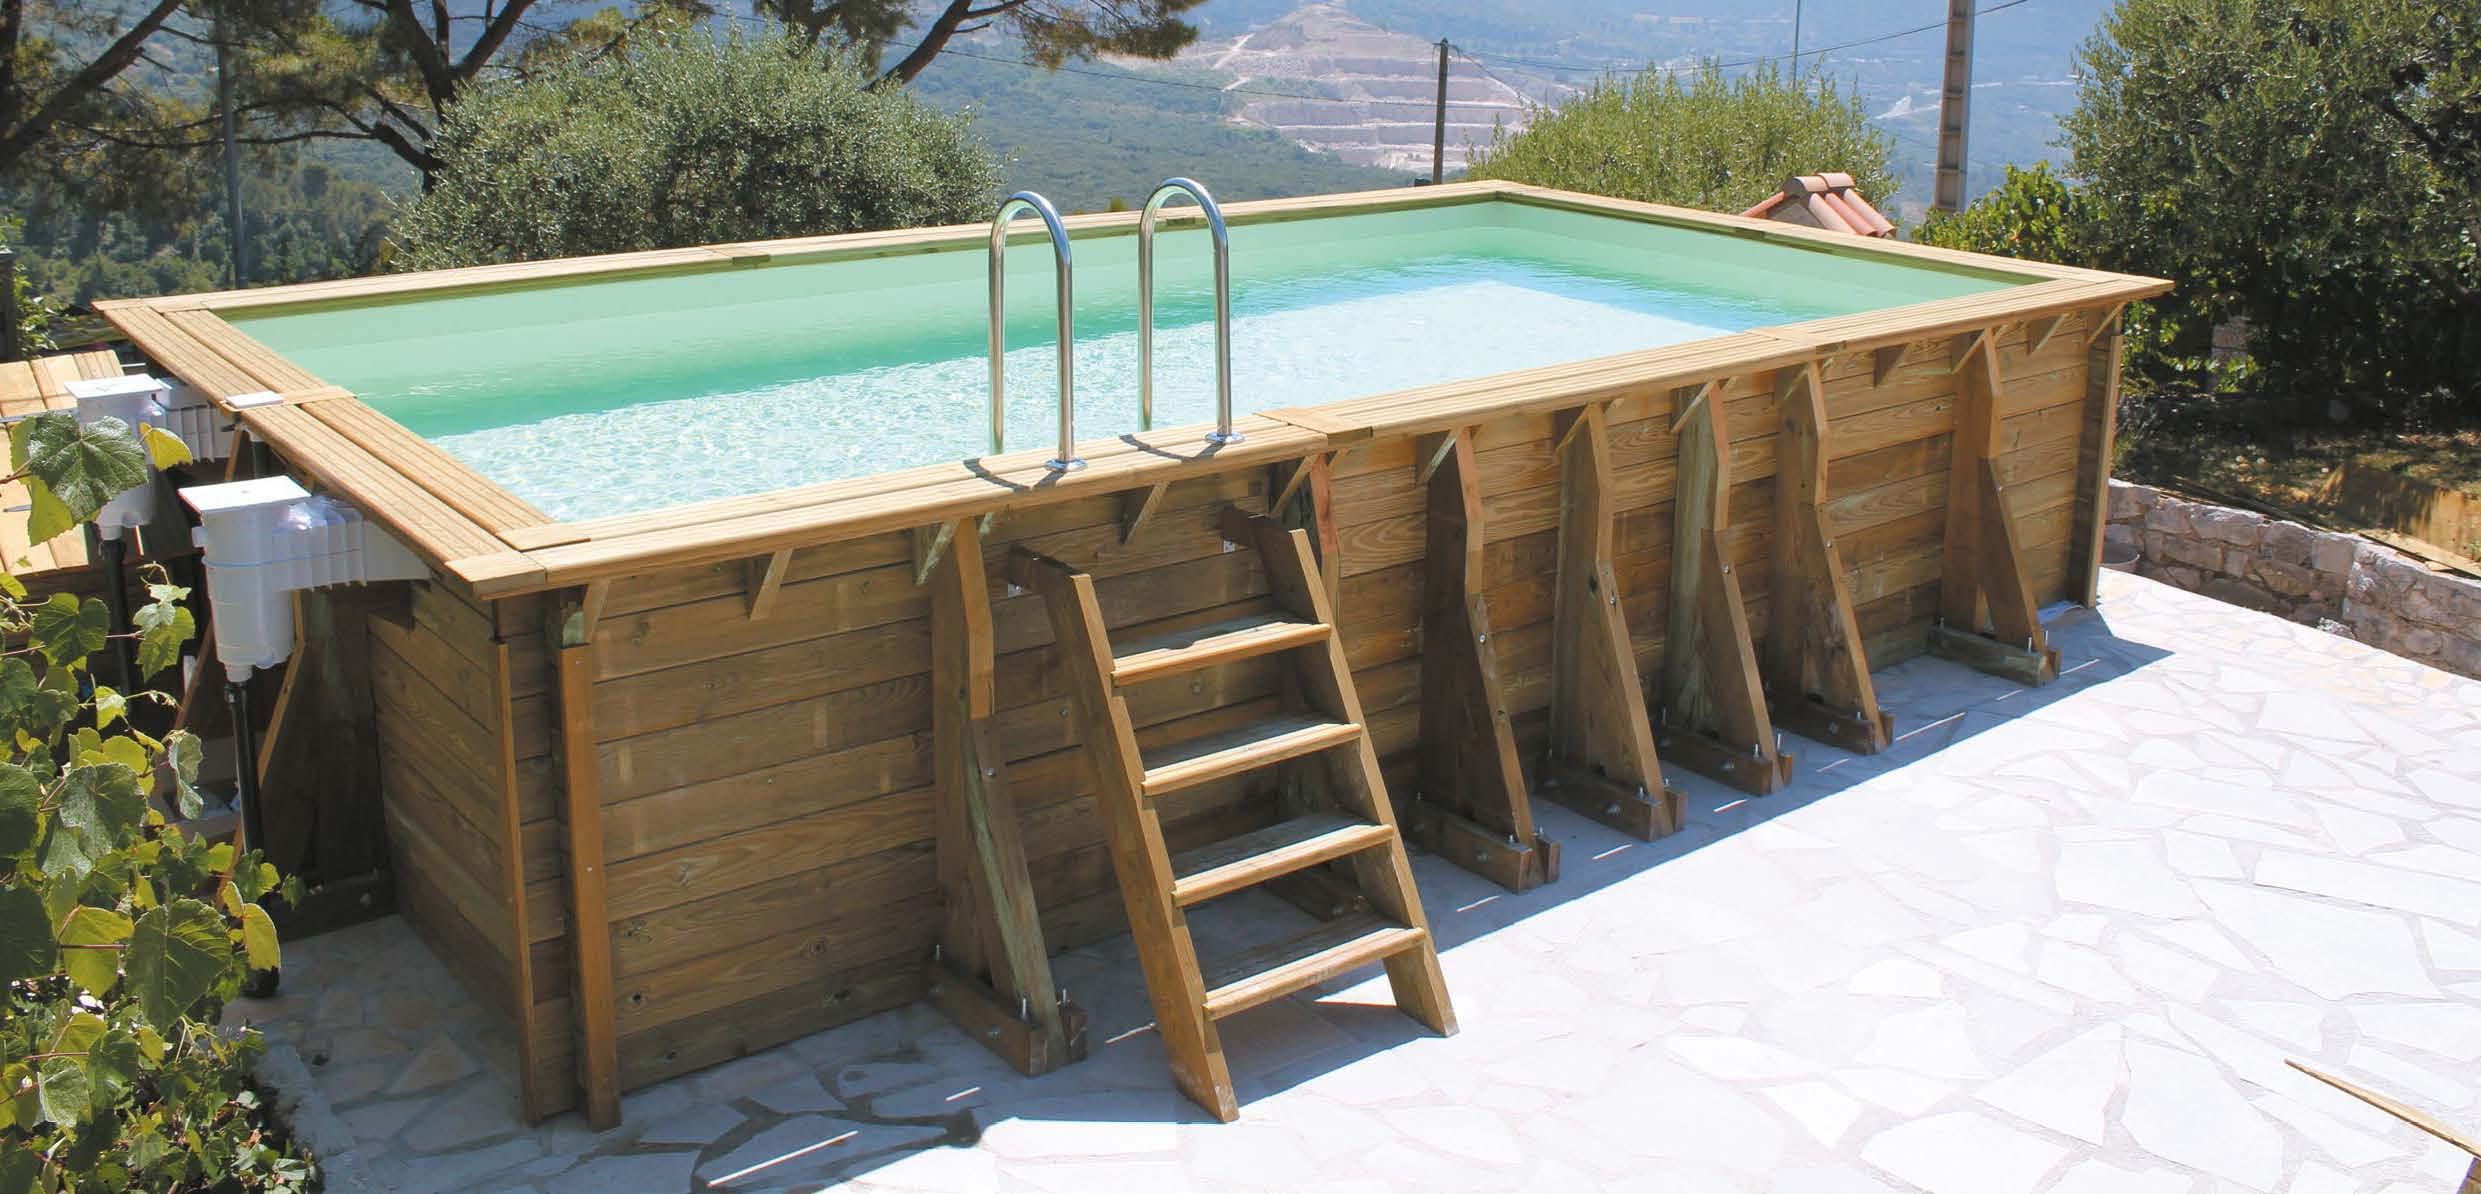 Piscine bois dream wood grand choix de taille for Piscine bois la redoute